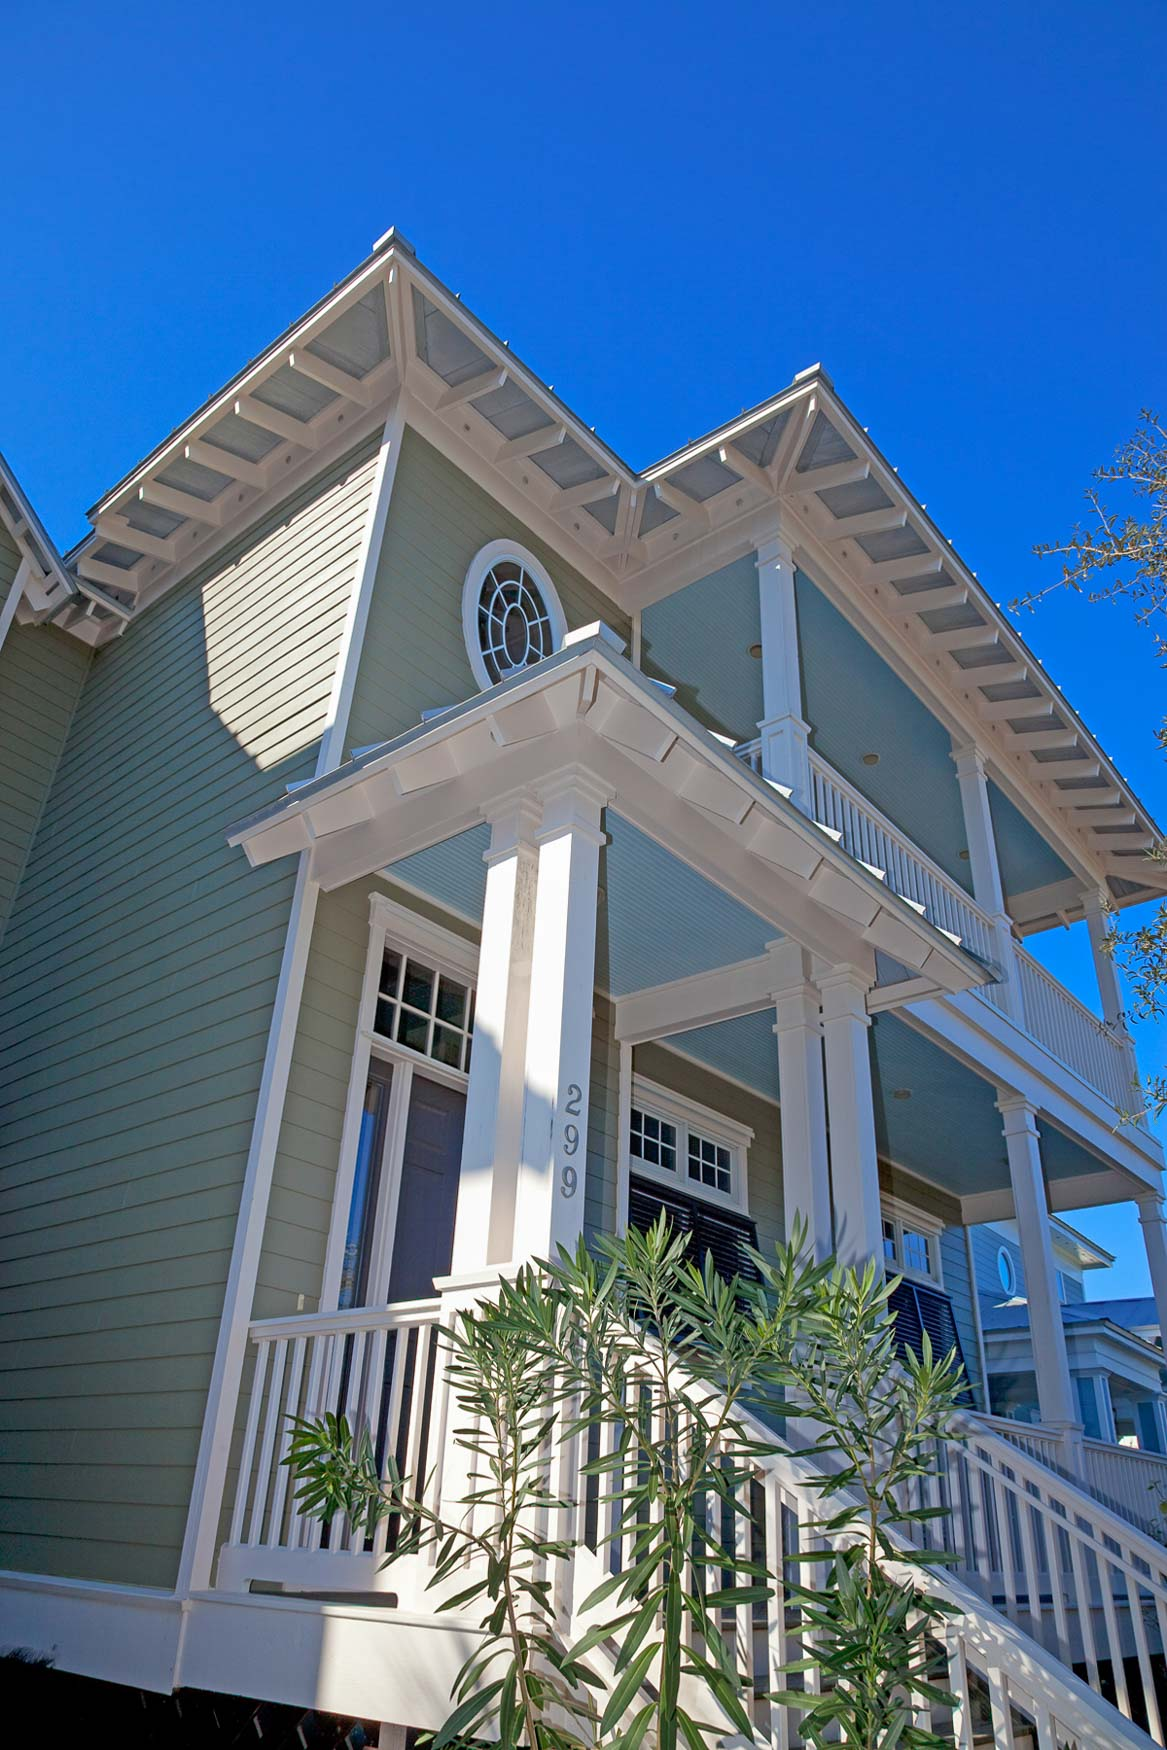 Front balcony and entry of Old Florida Beach new construction home.